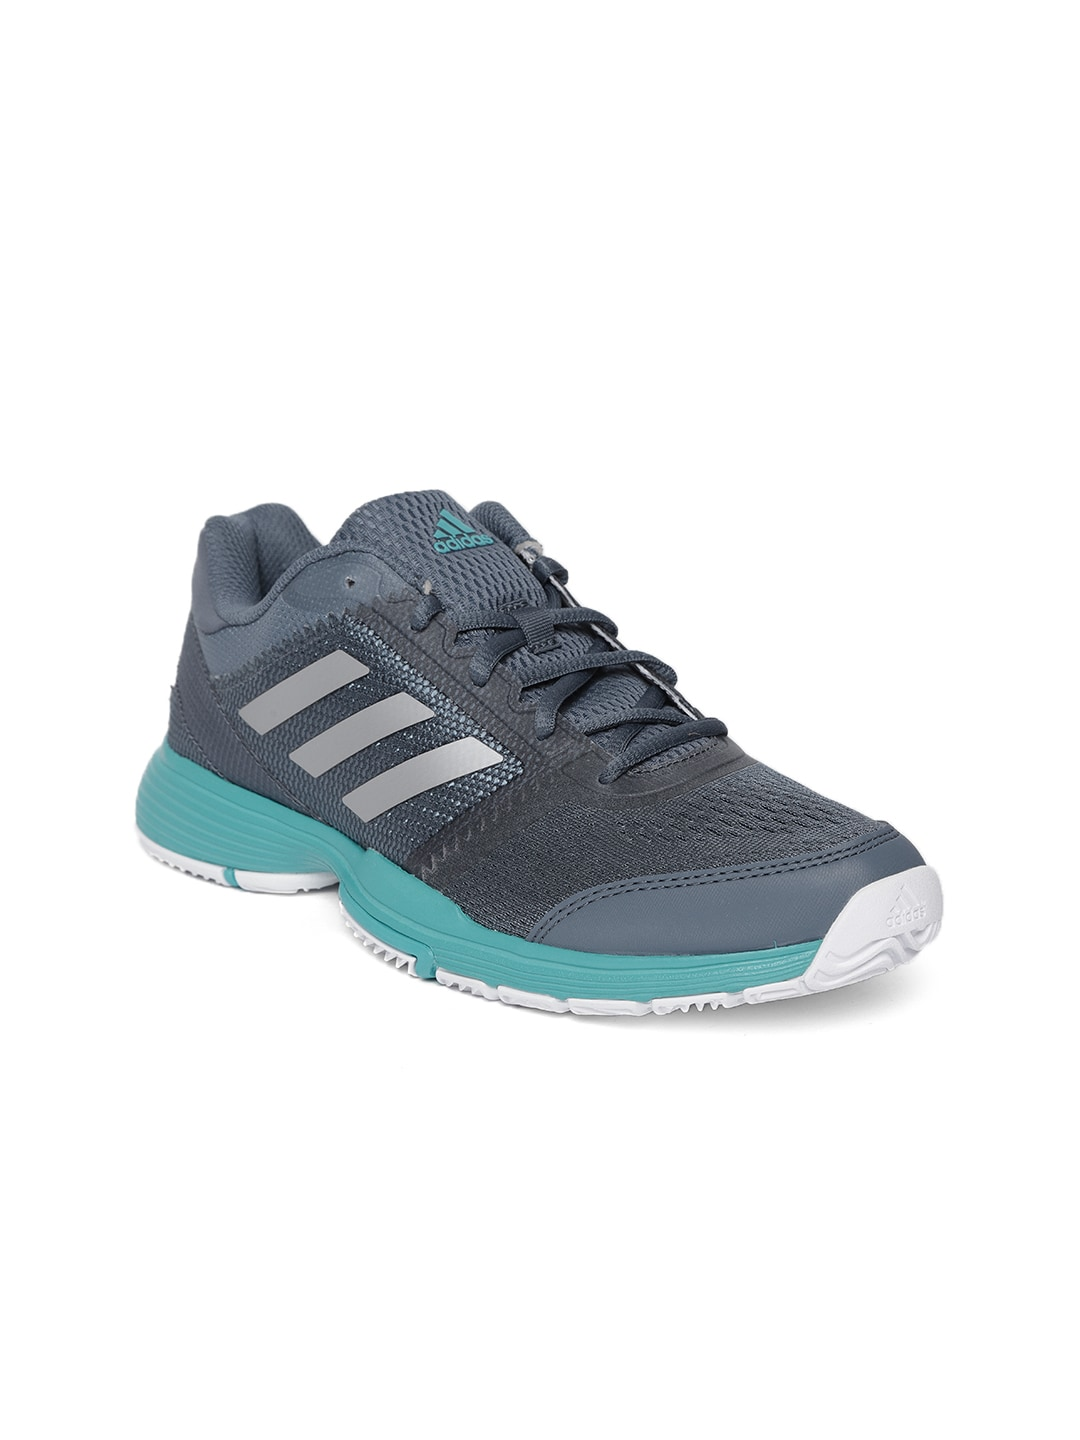 82816bd369 Women s Adidas Shoes - Buy Adidas Shoes for Women Online in India